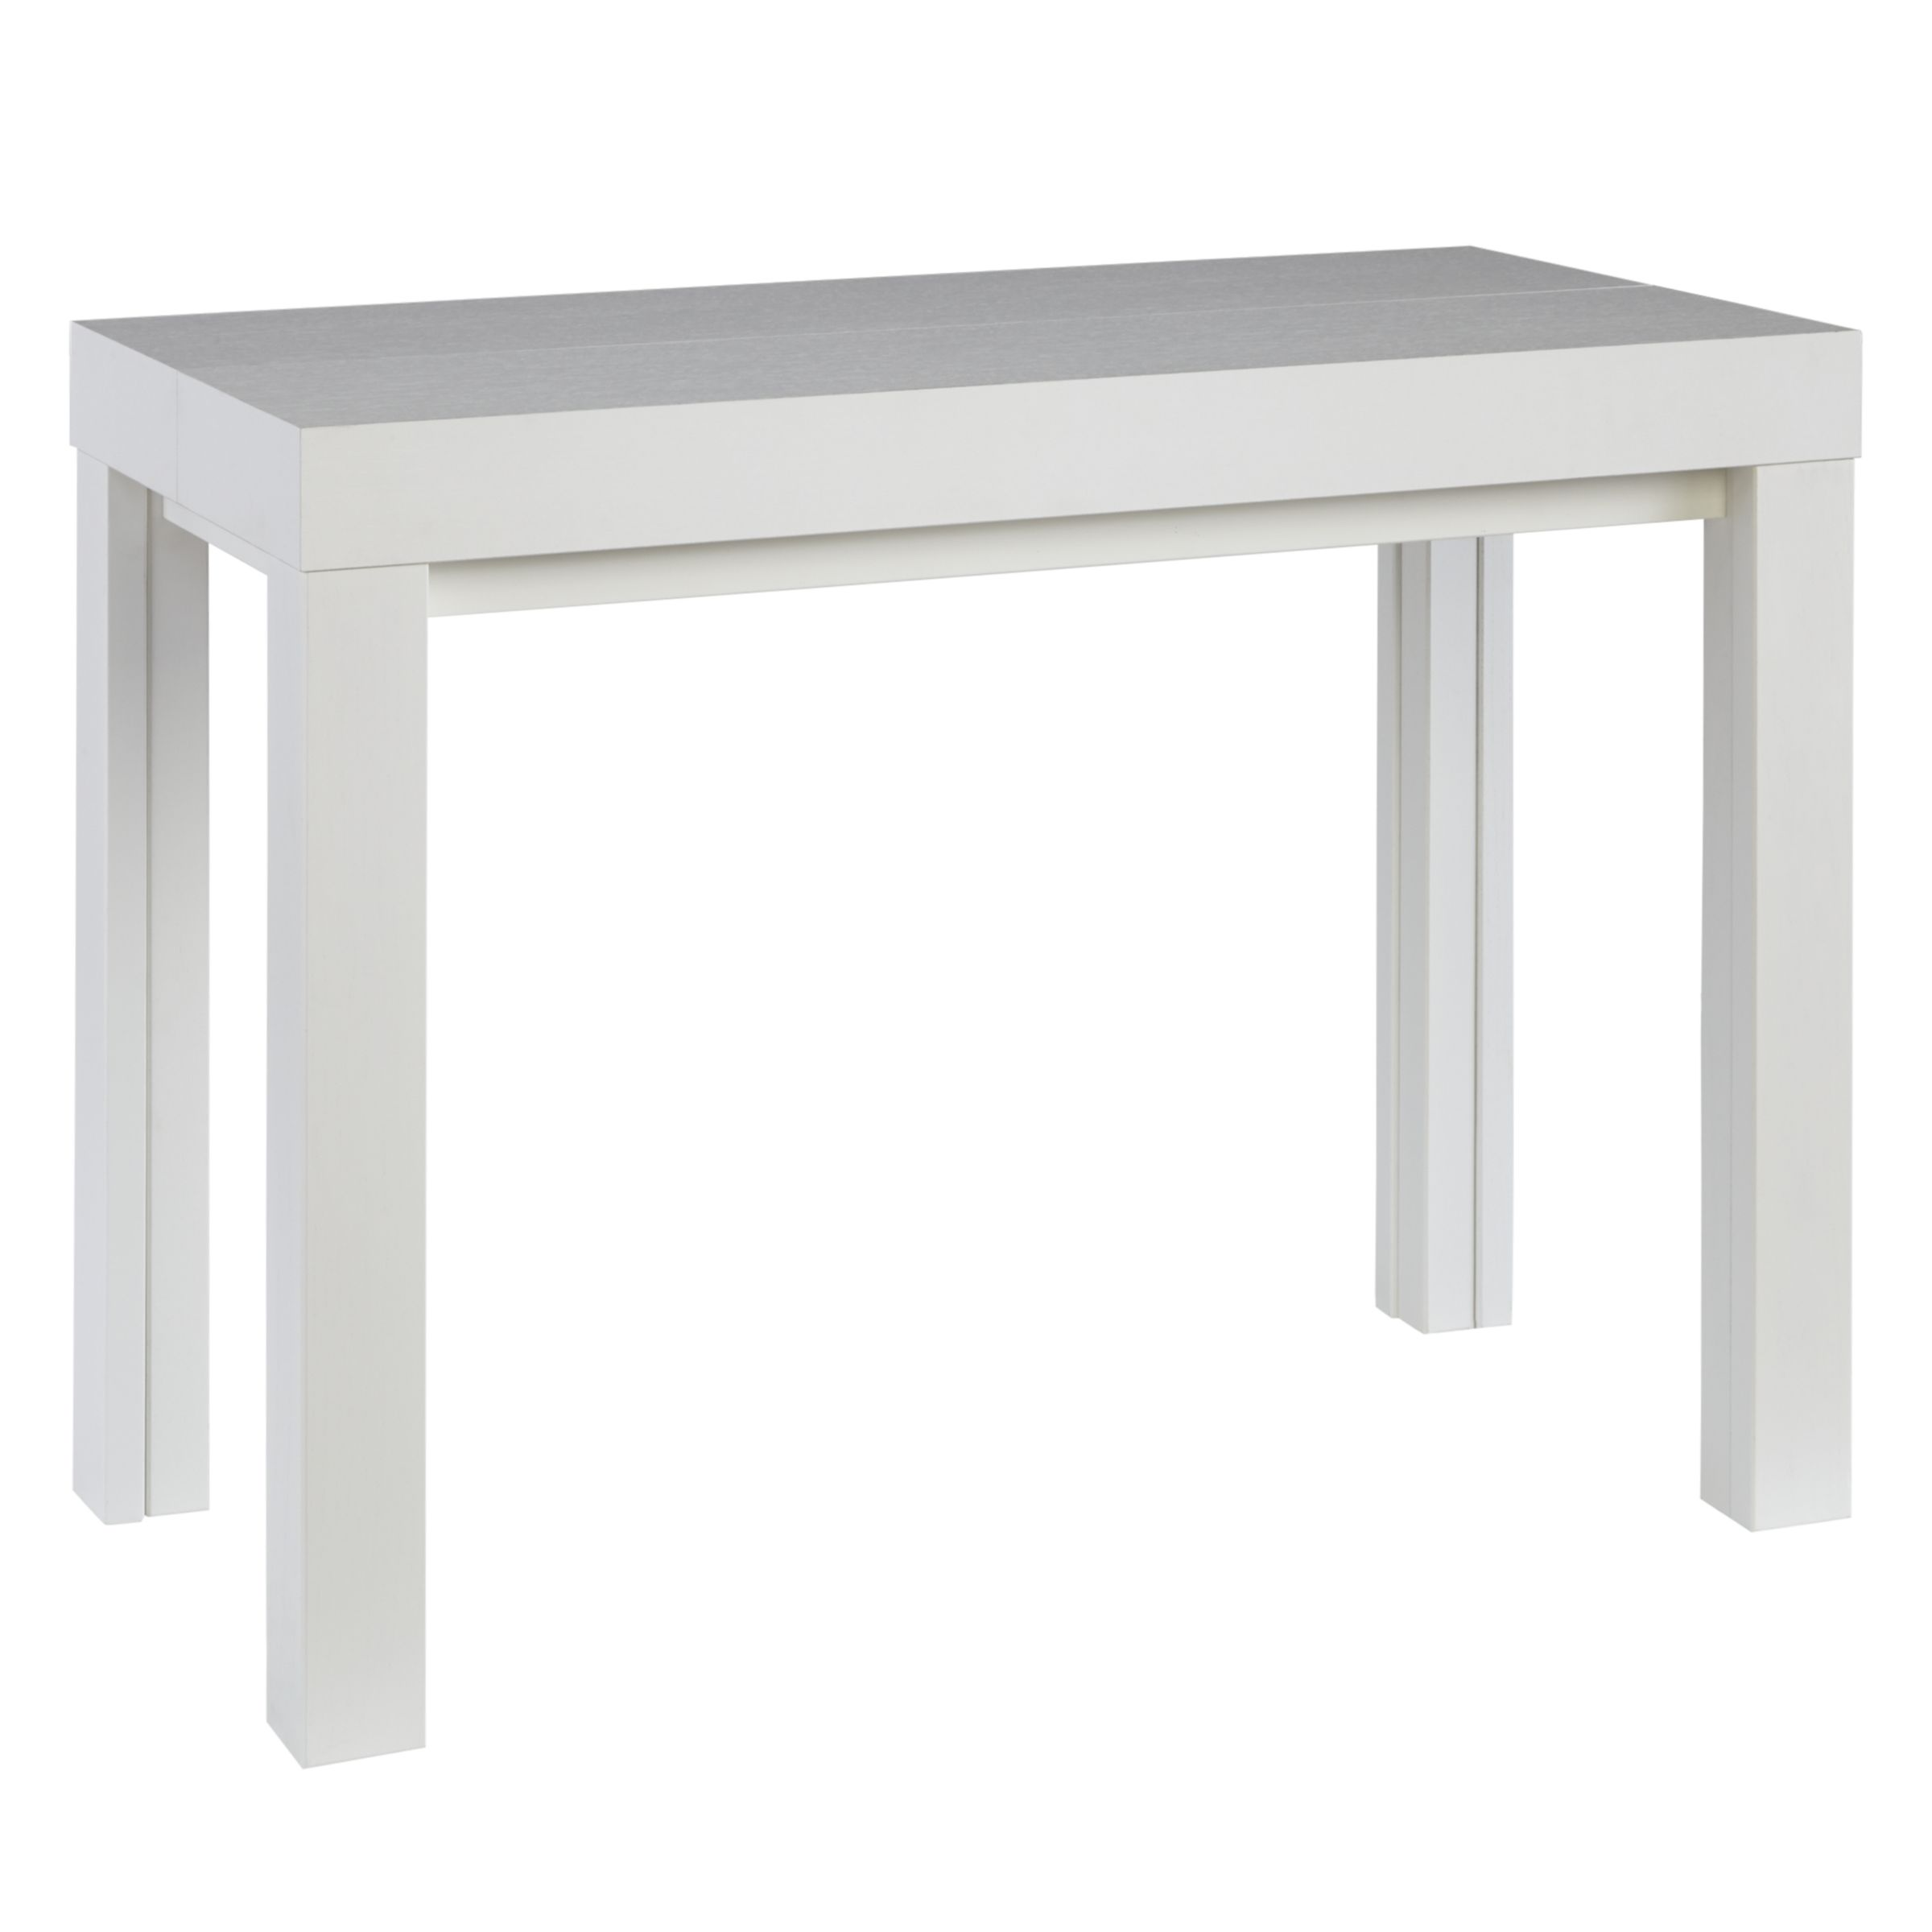 Buy John Lewis Cosmo 12Seater Extending Console and Dining Table